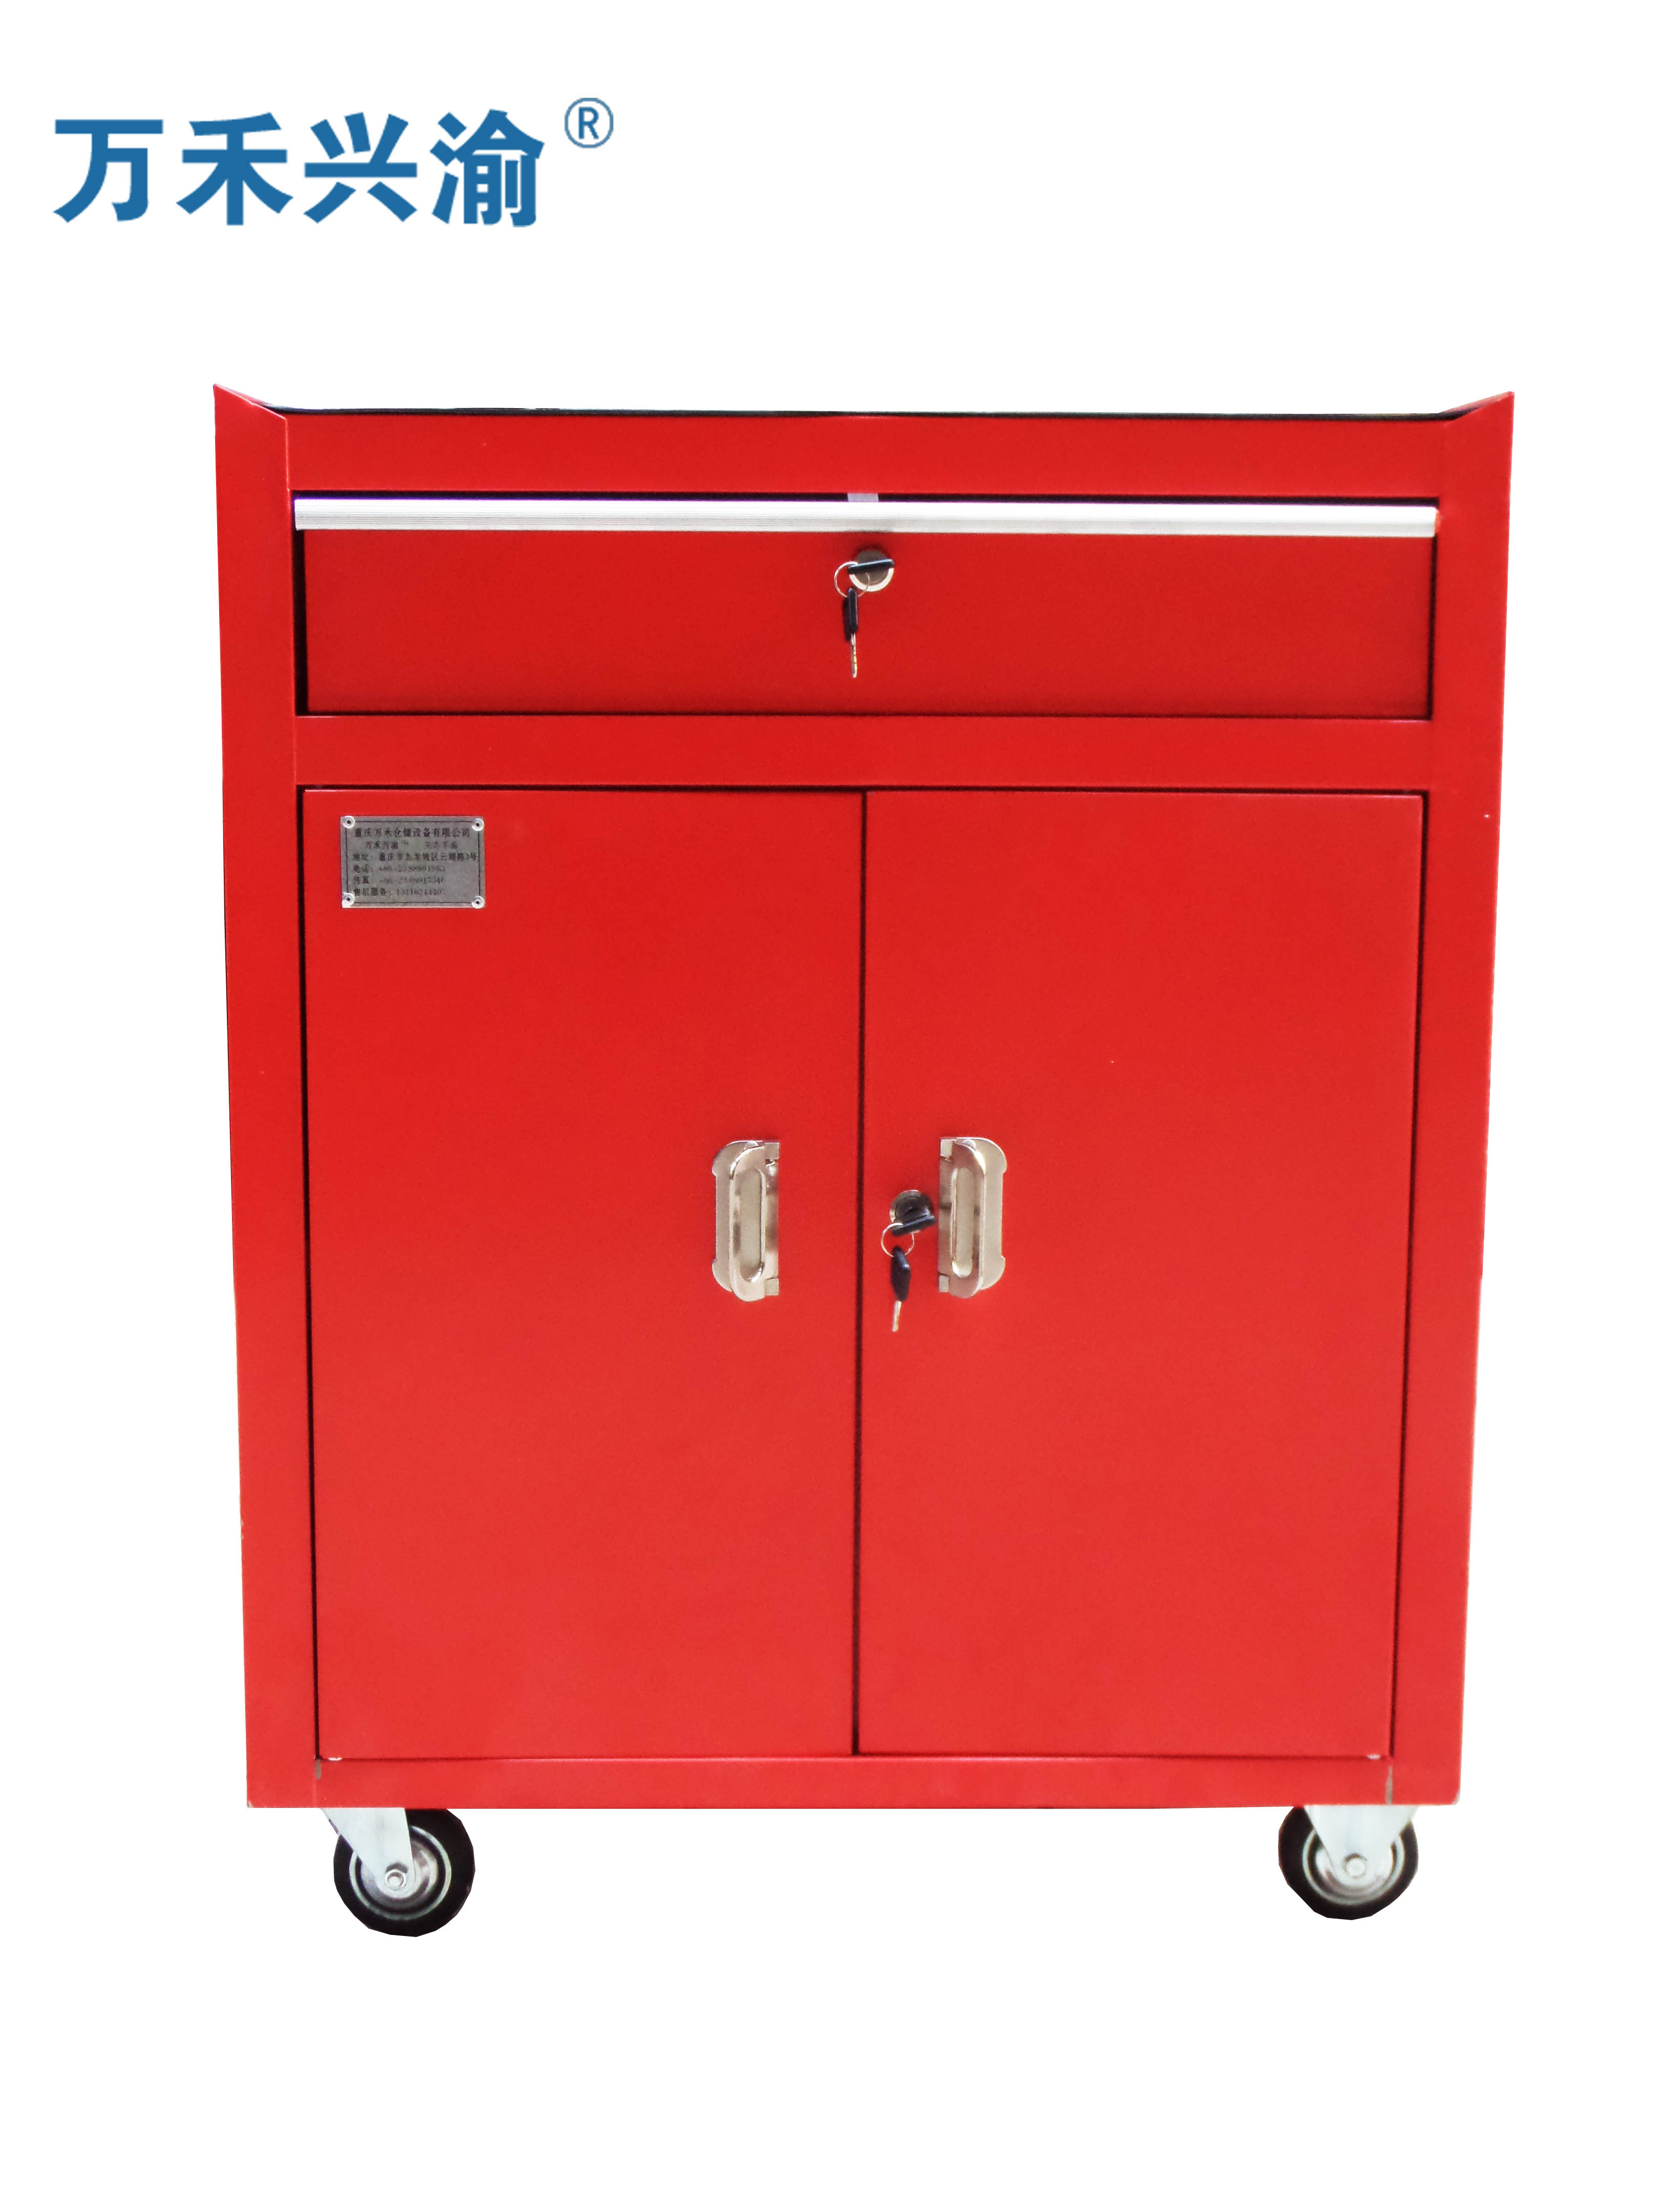 He xing yu [wan] ordinary double door tool cart tool cabinet with drawers auto repair tool car